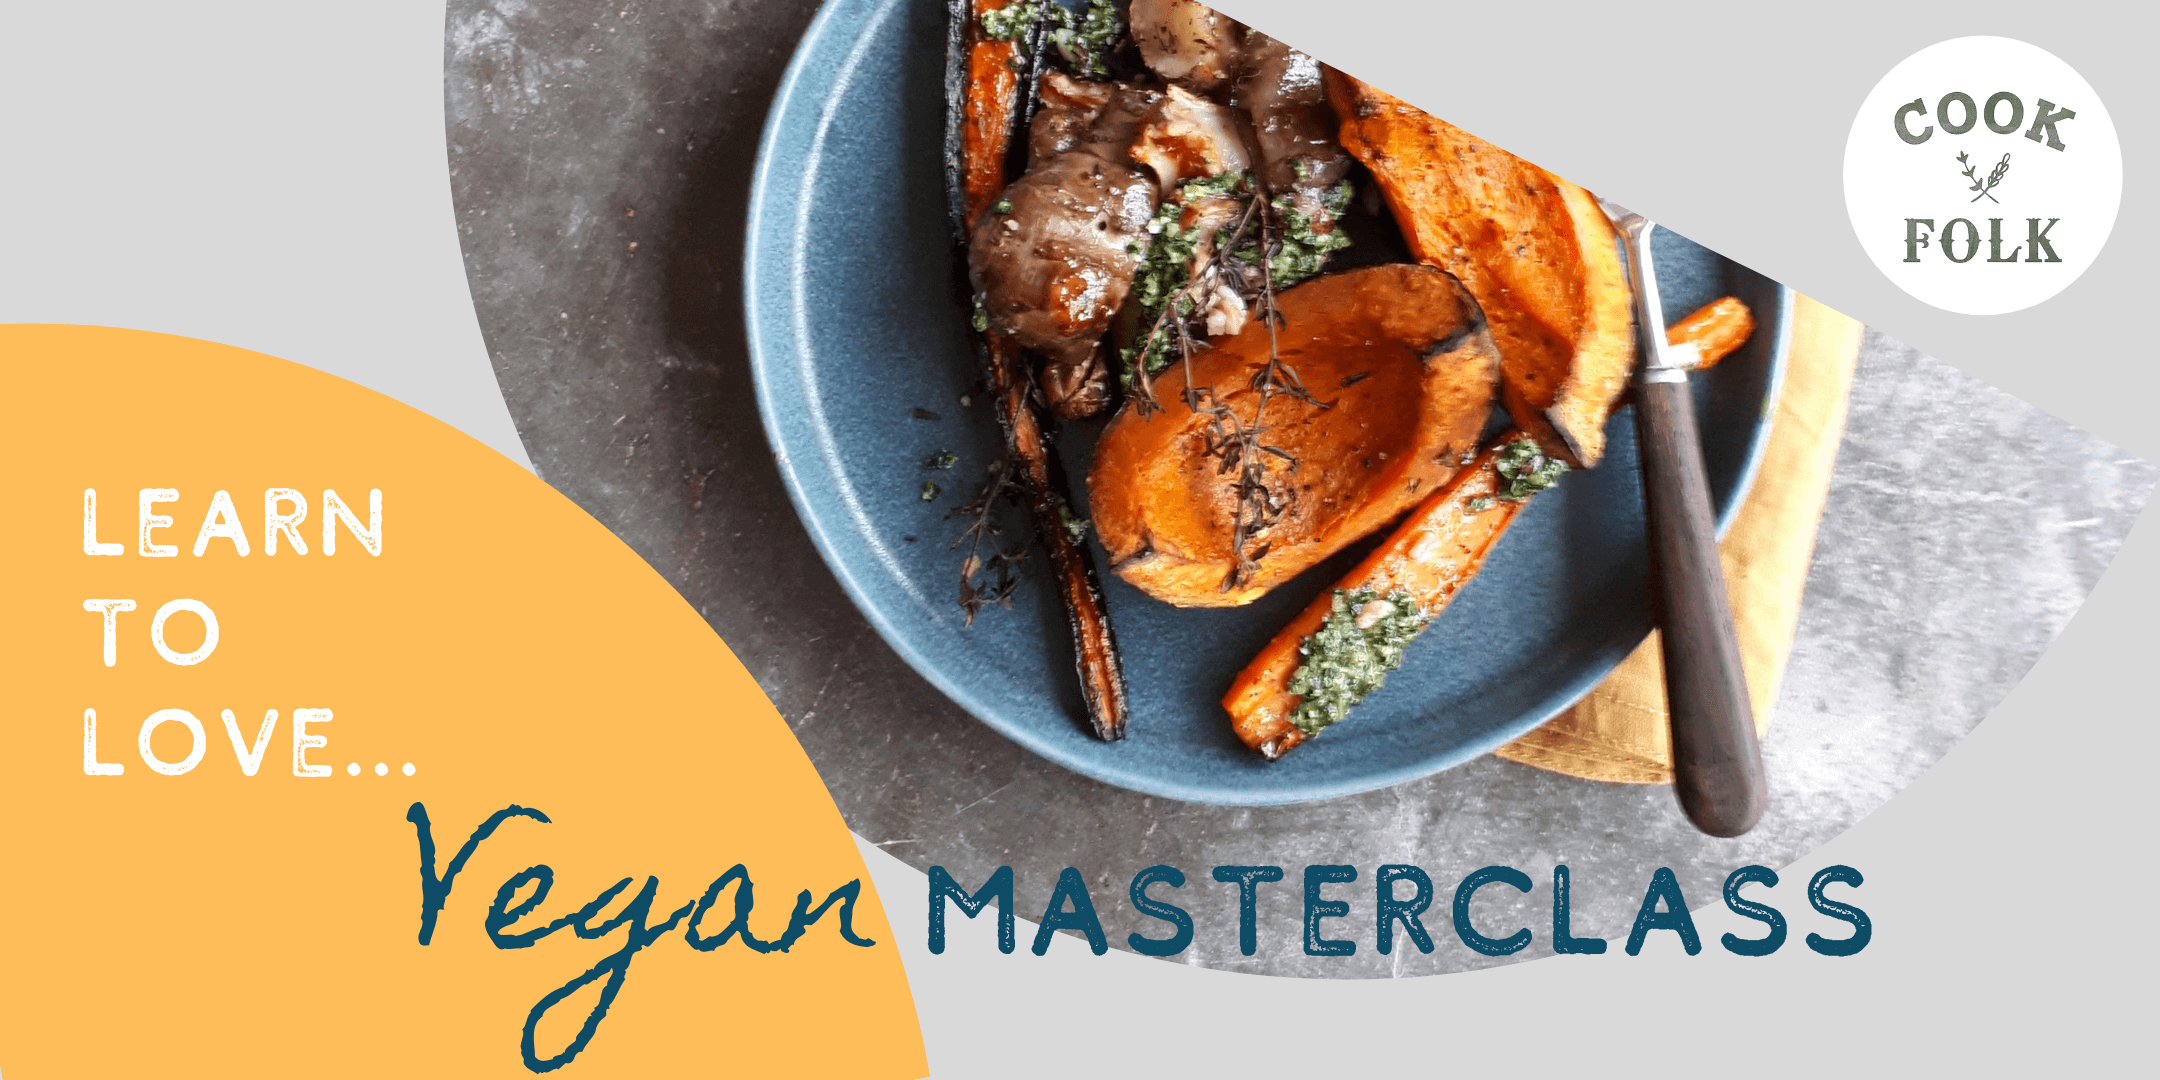 Vegan Online Masterclasses by Cook Folk